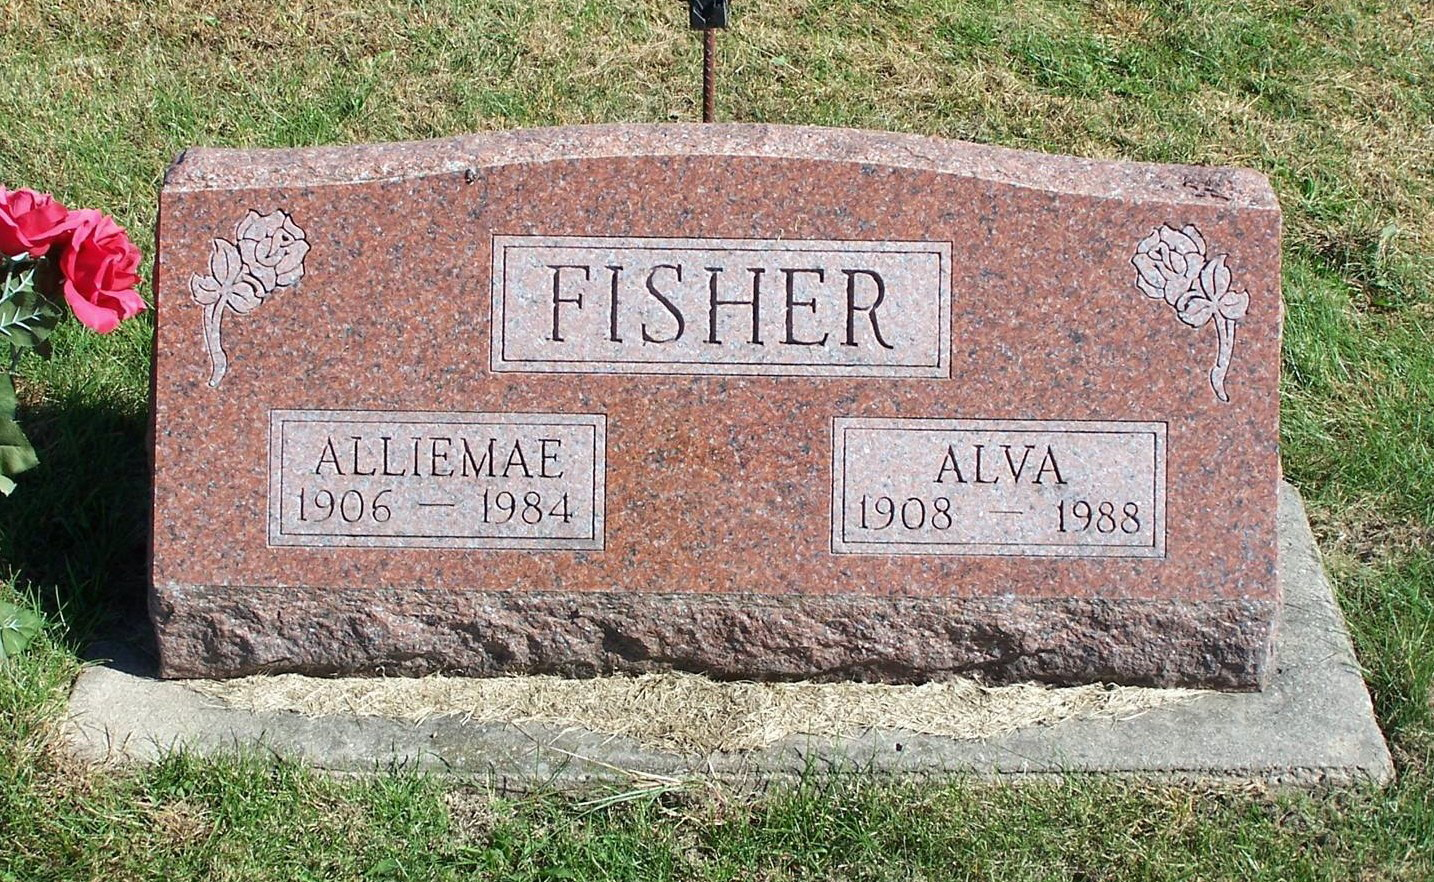 Alva Fisher